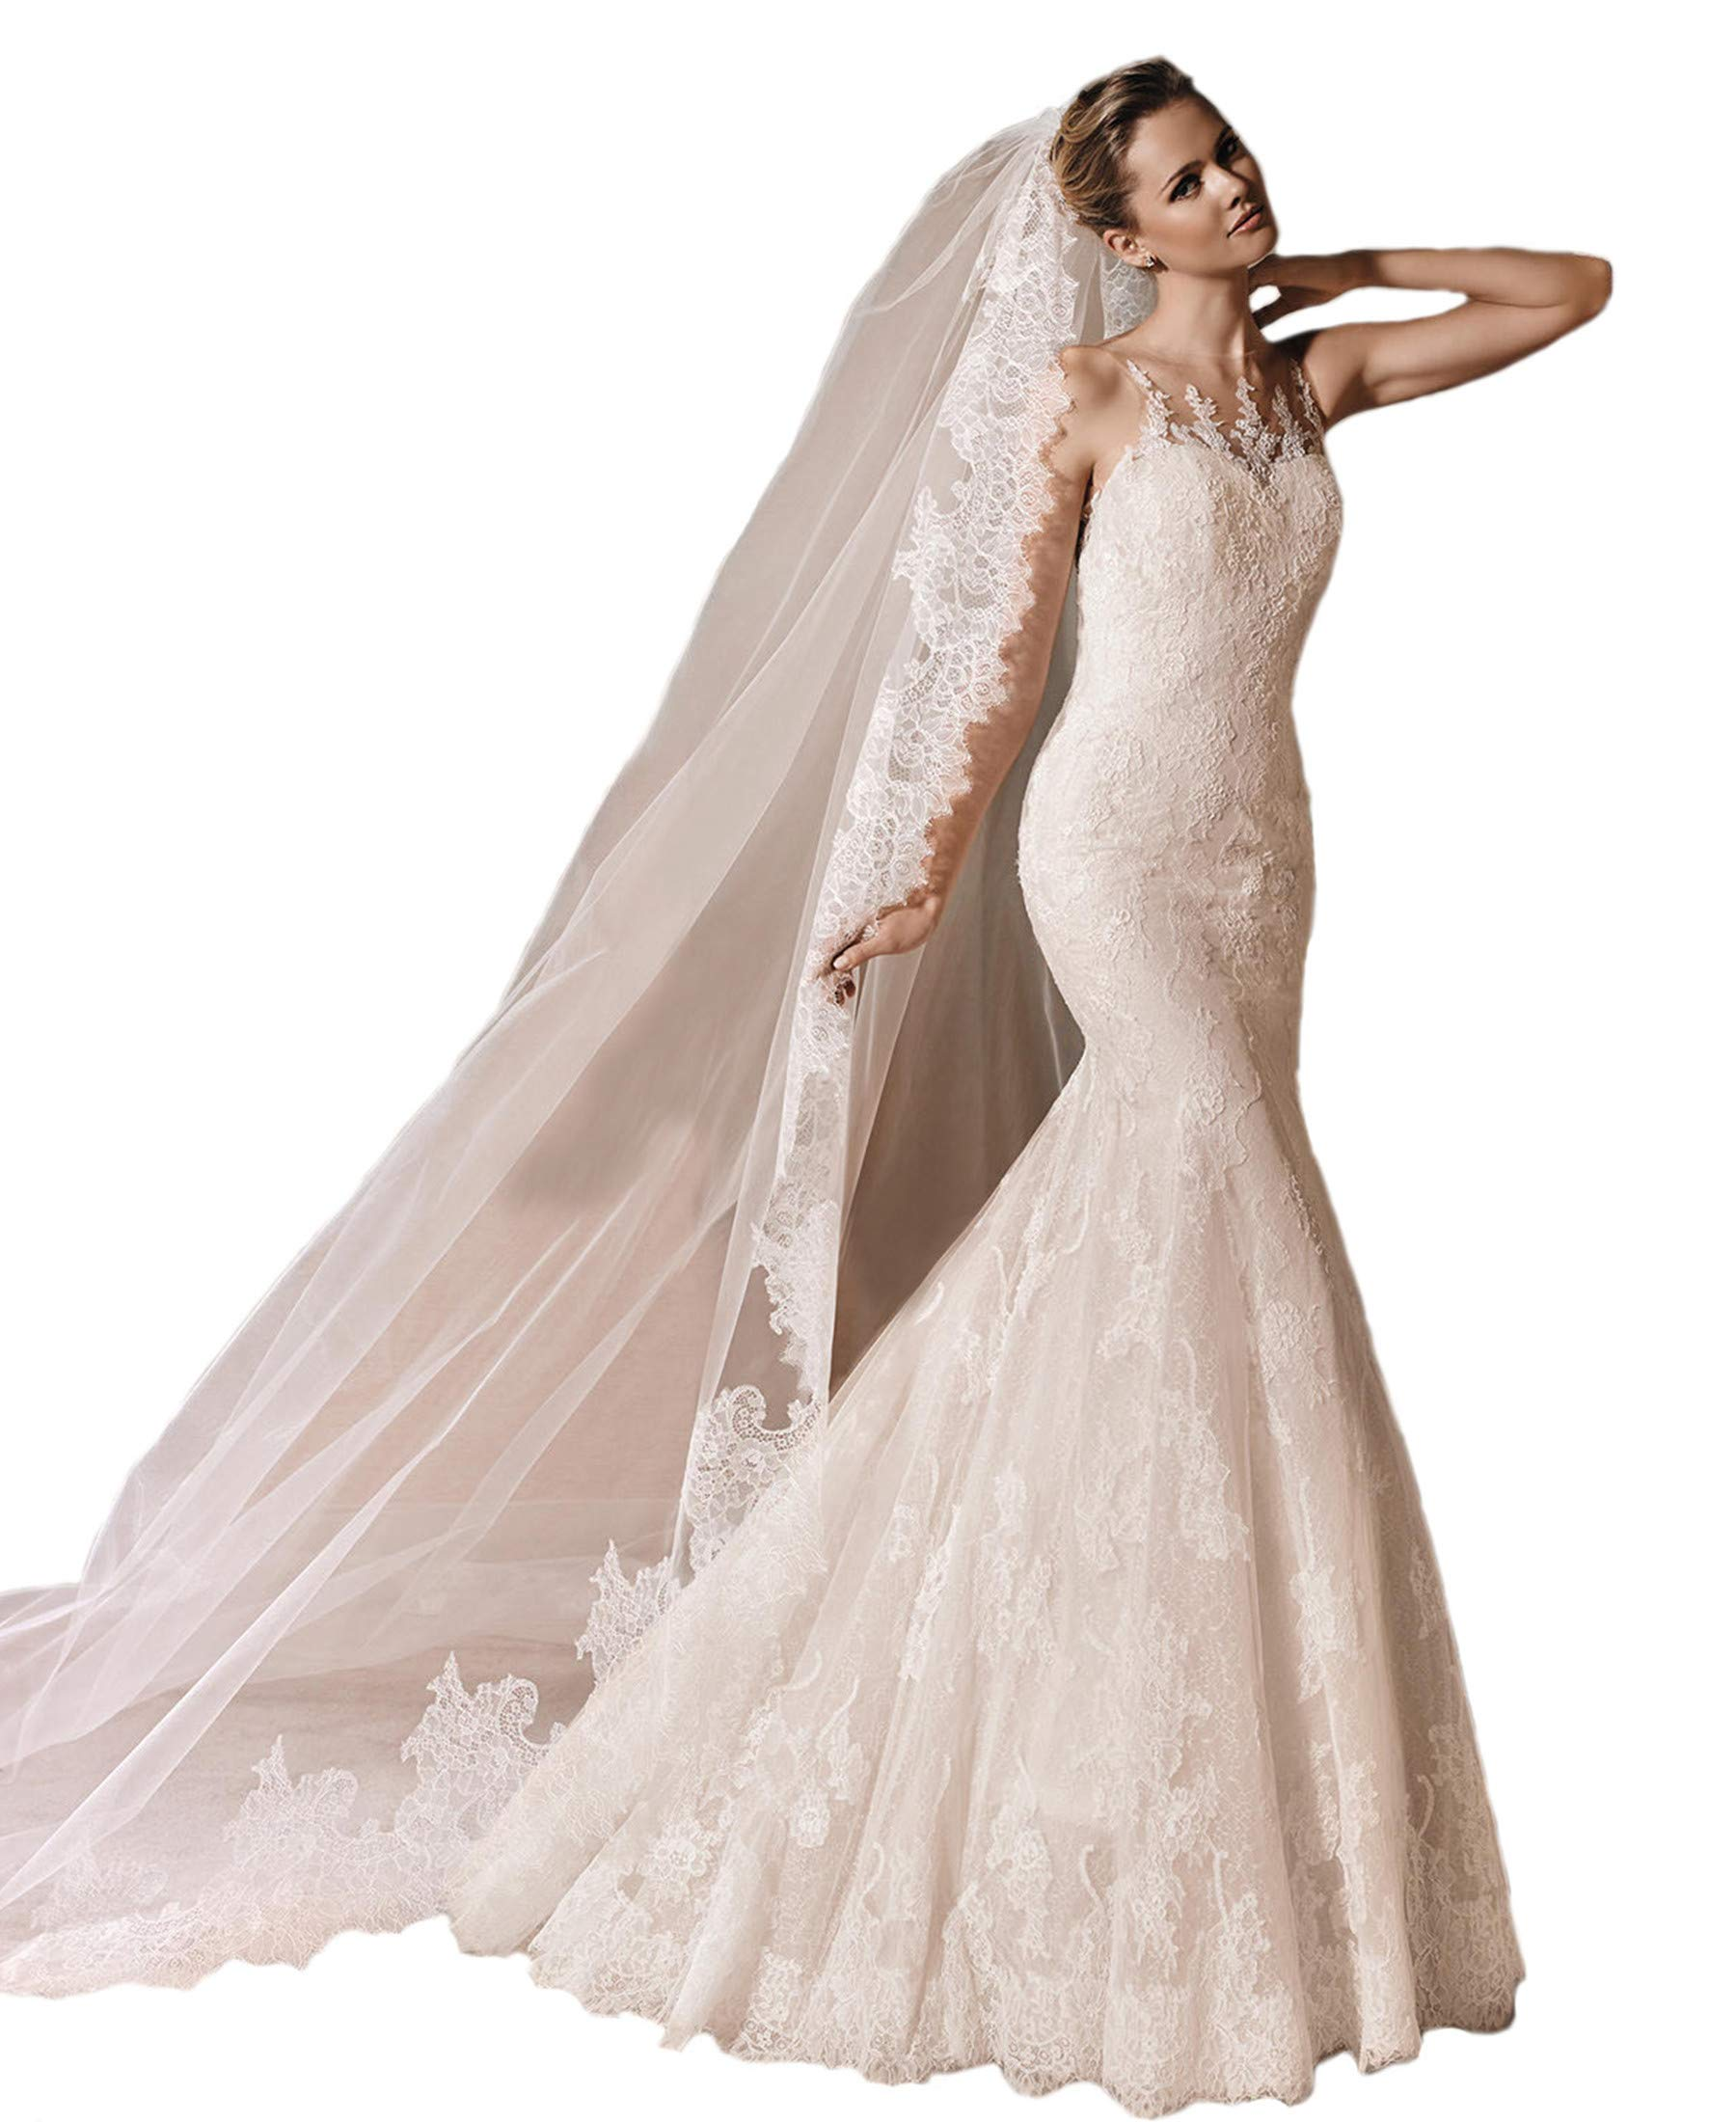 Passat Ivory 1T 3M Long Cathedral Scalloped Soft French Lace bridal veil H18